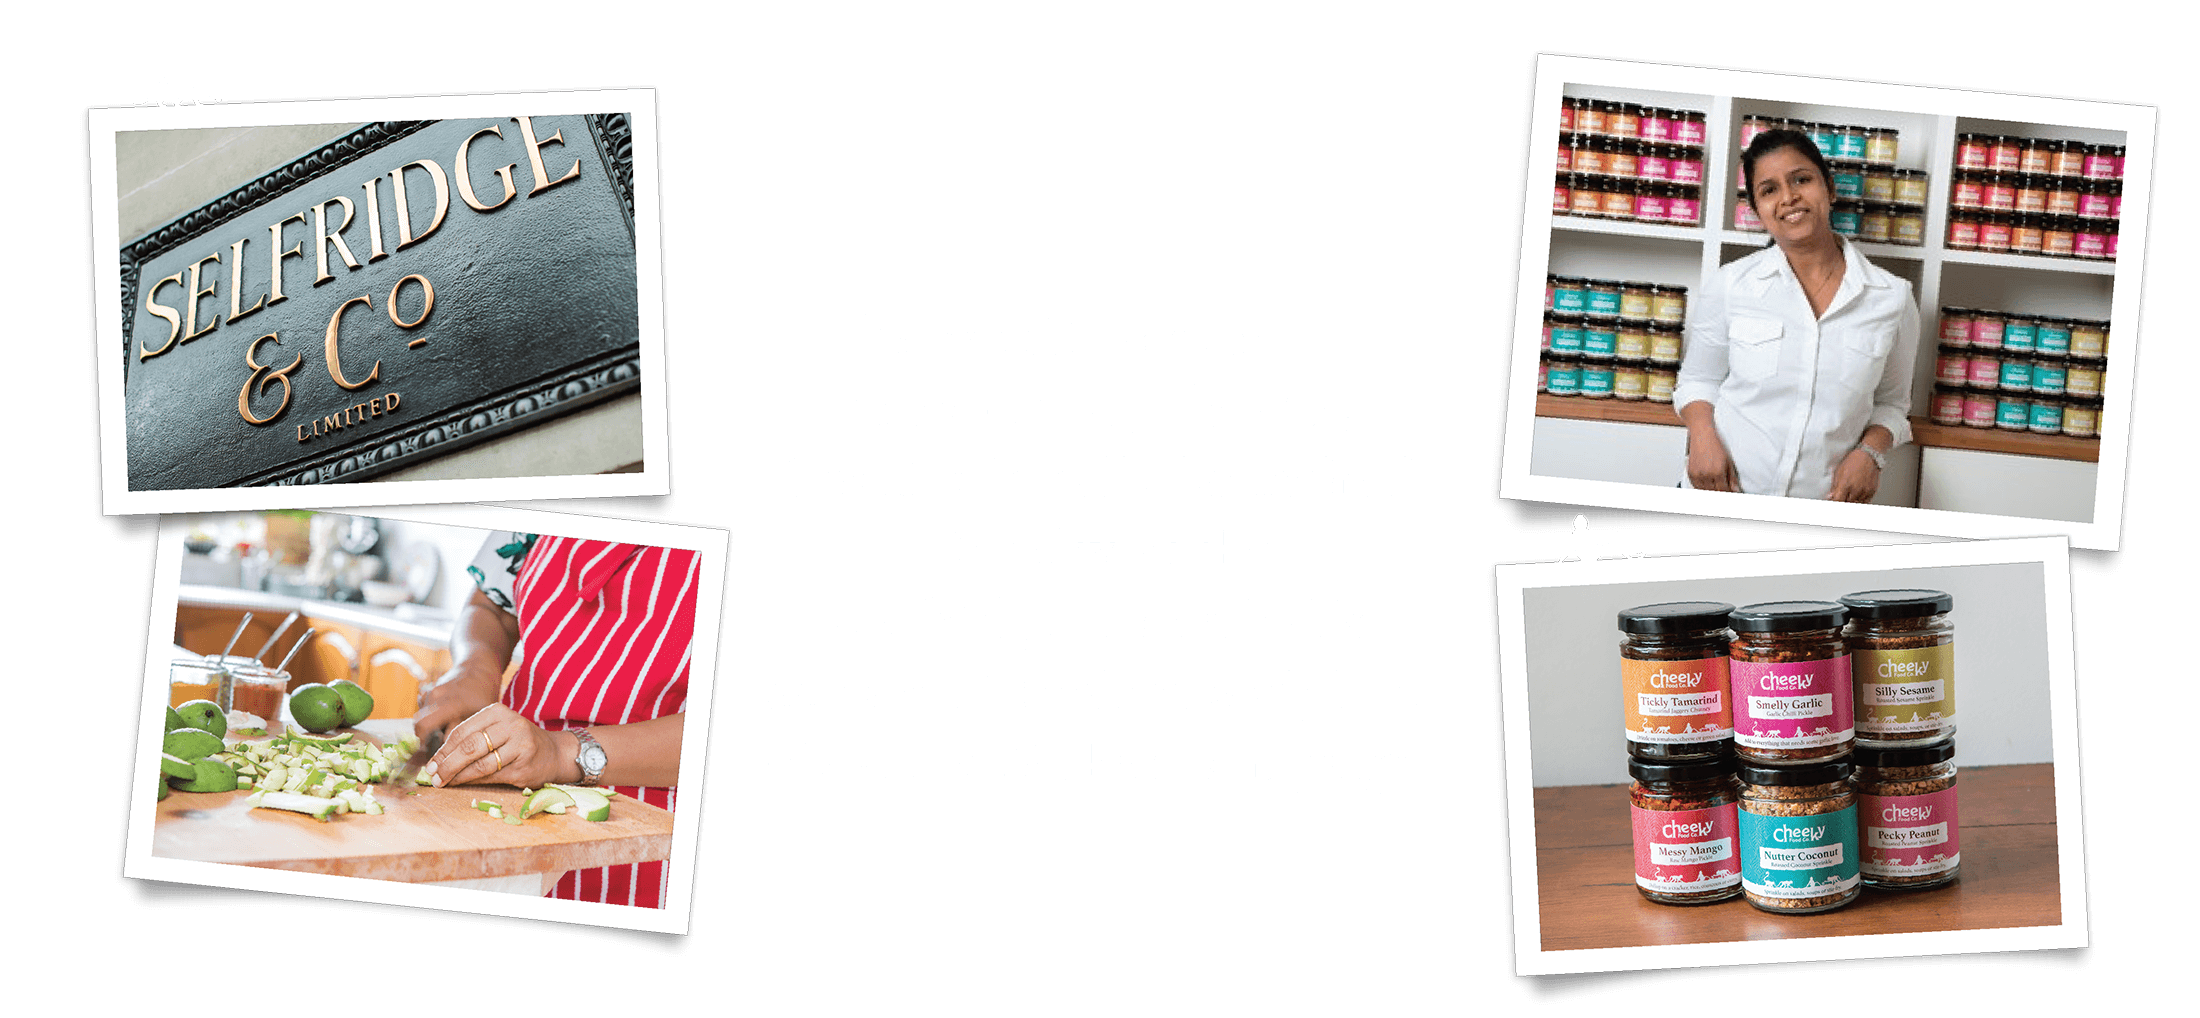 The result was that on the 30th of July 2015, Swati officially launched Cheeky at the Selfridges Food halls as part of their prestigious Meet the Maker campaign.